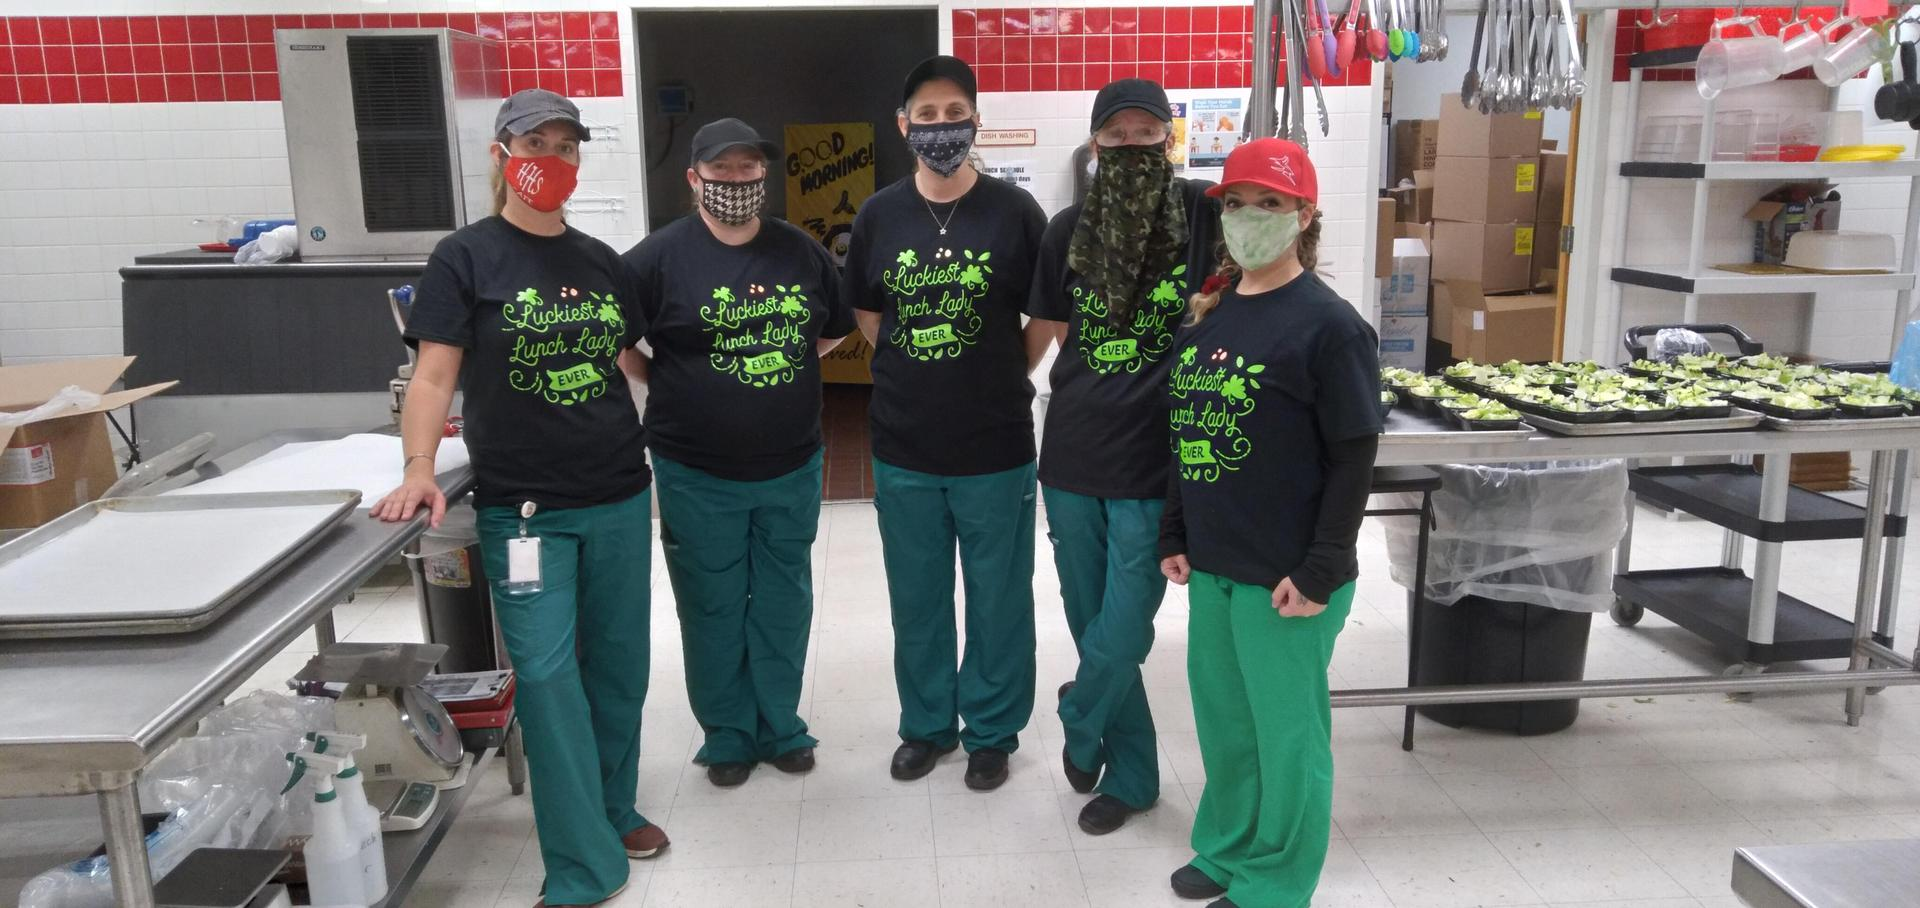 St. Patrick's Day at HS